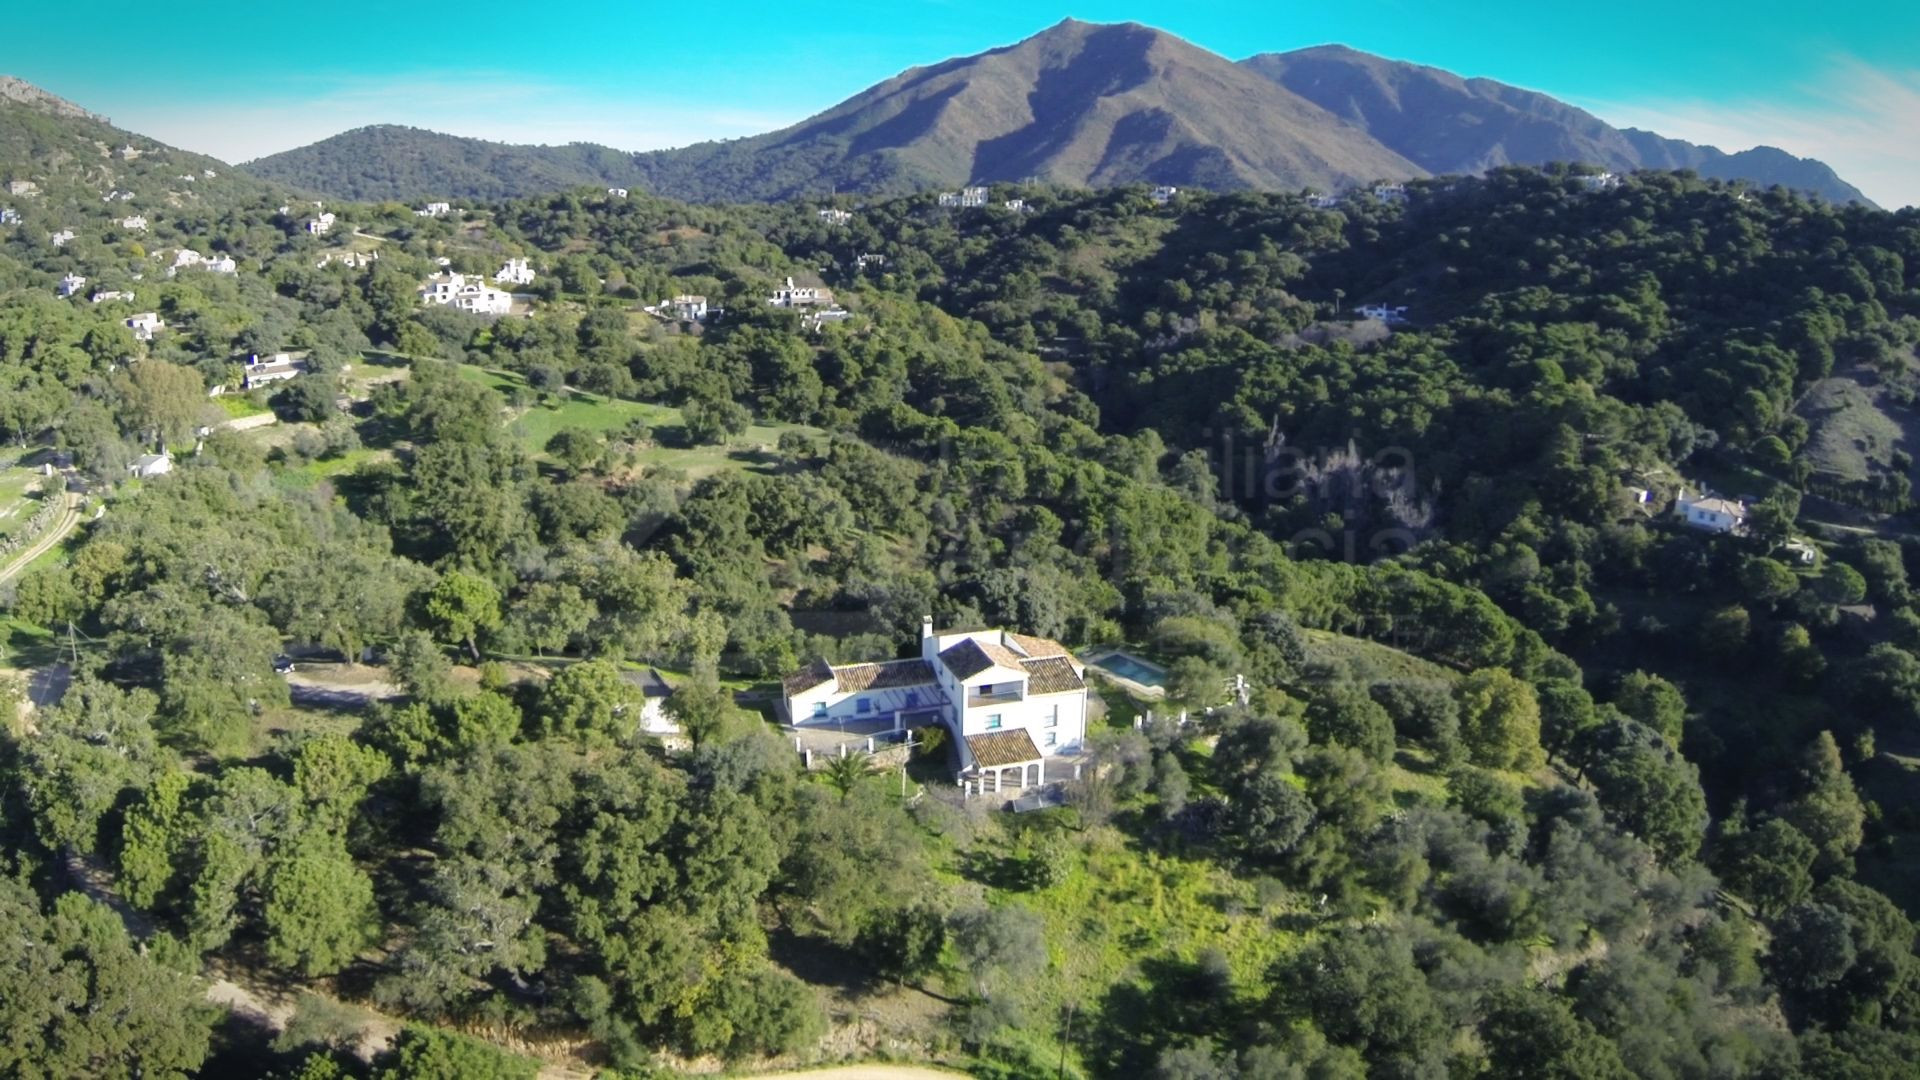 Charming 3-bed country house for sale in beautful location of La Celima, Casares